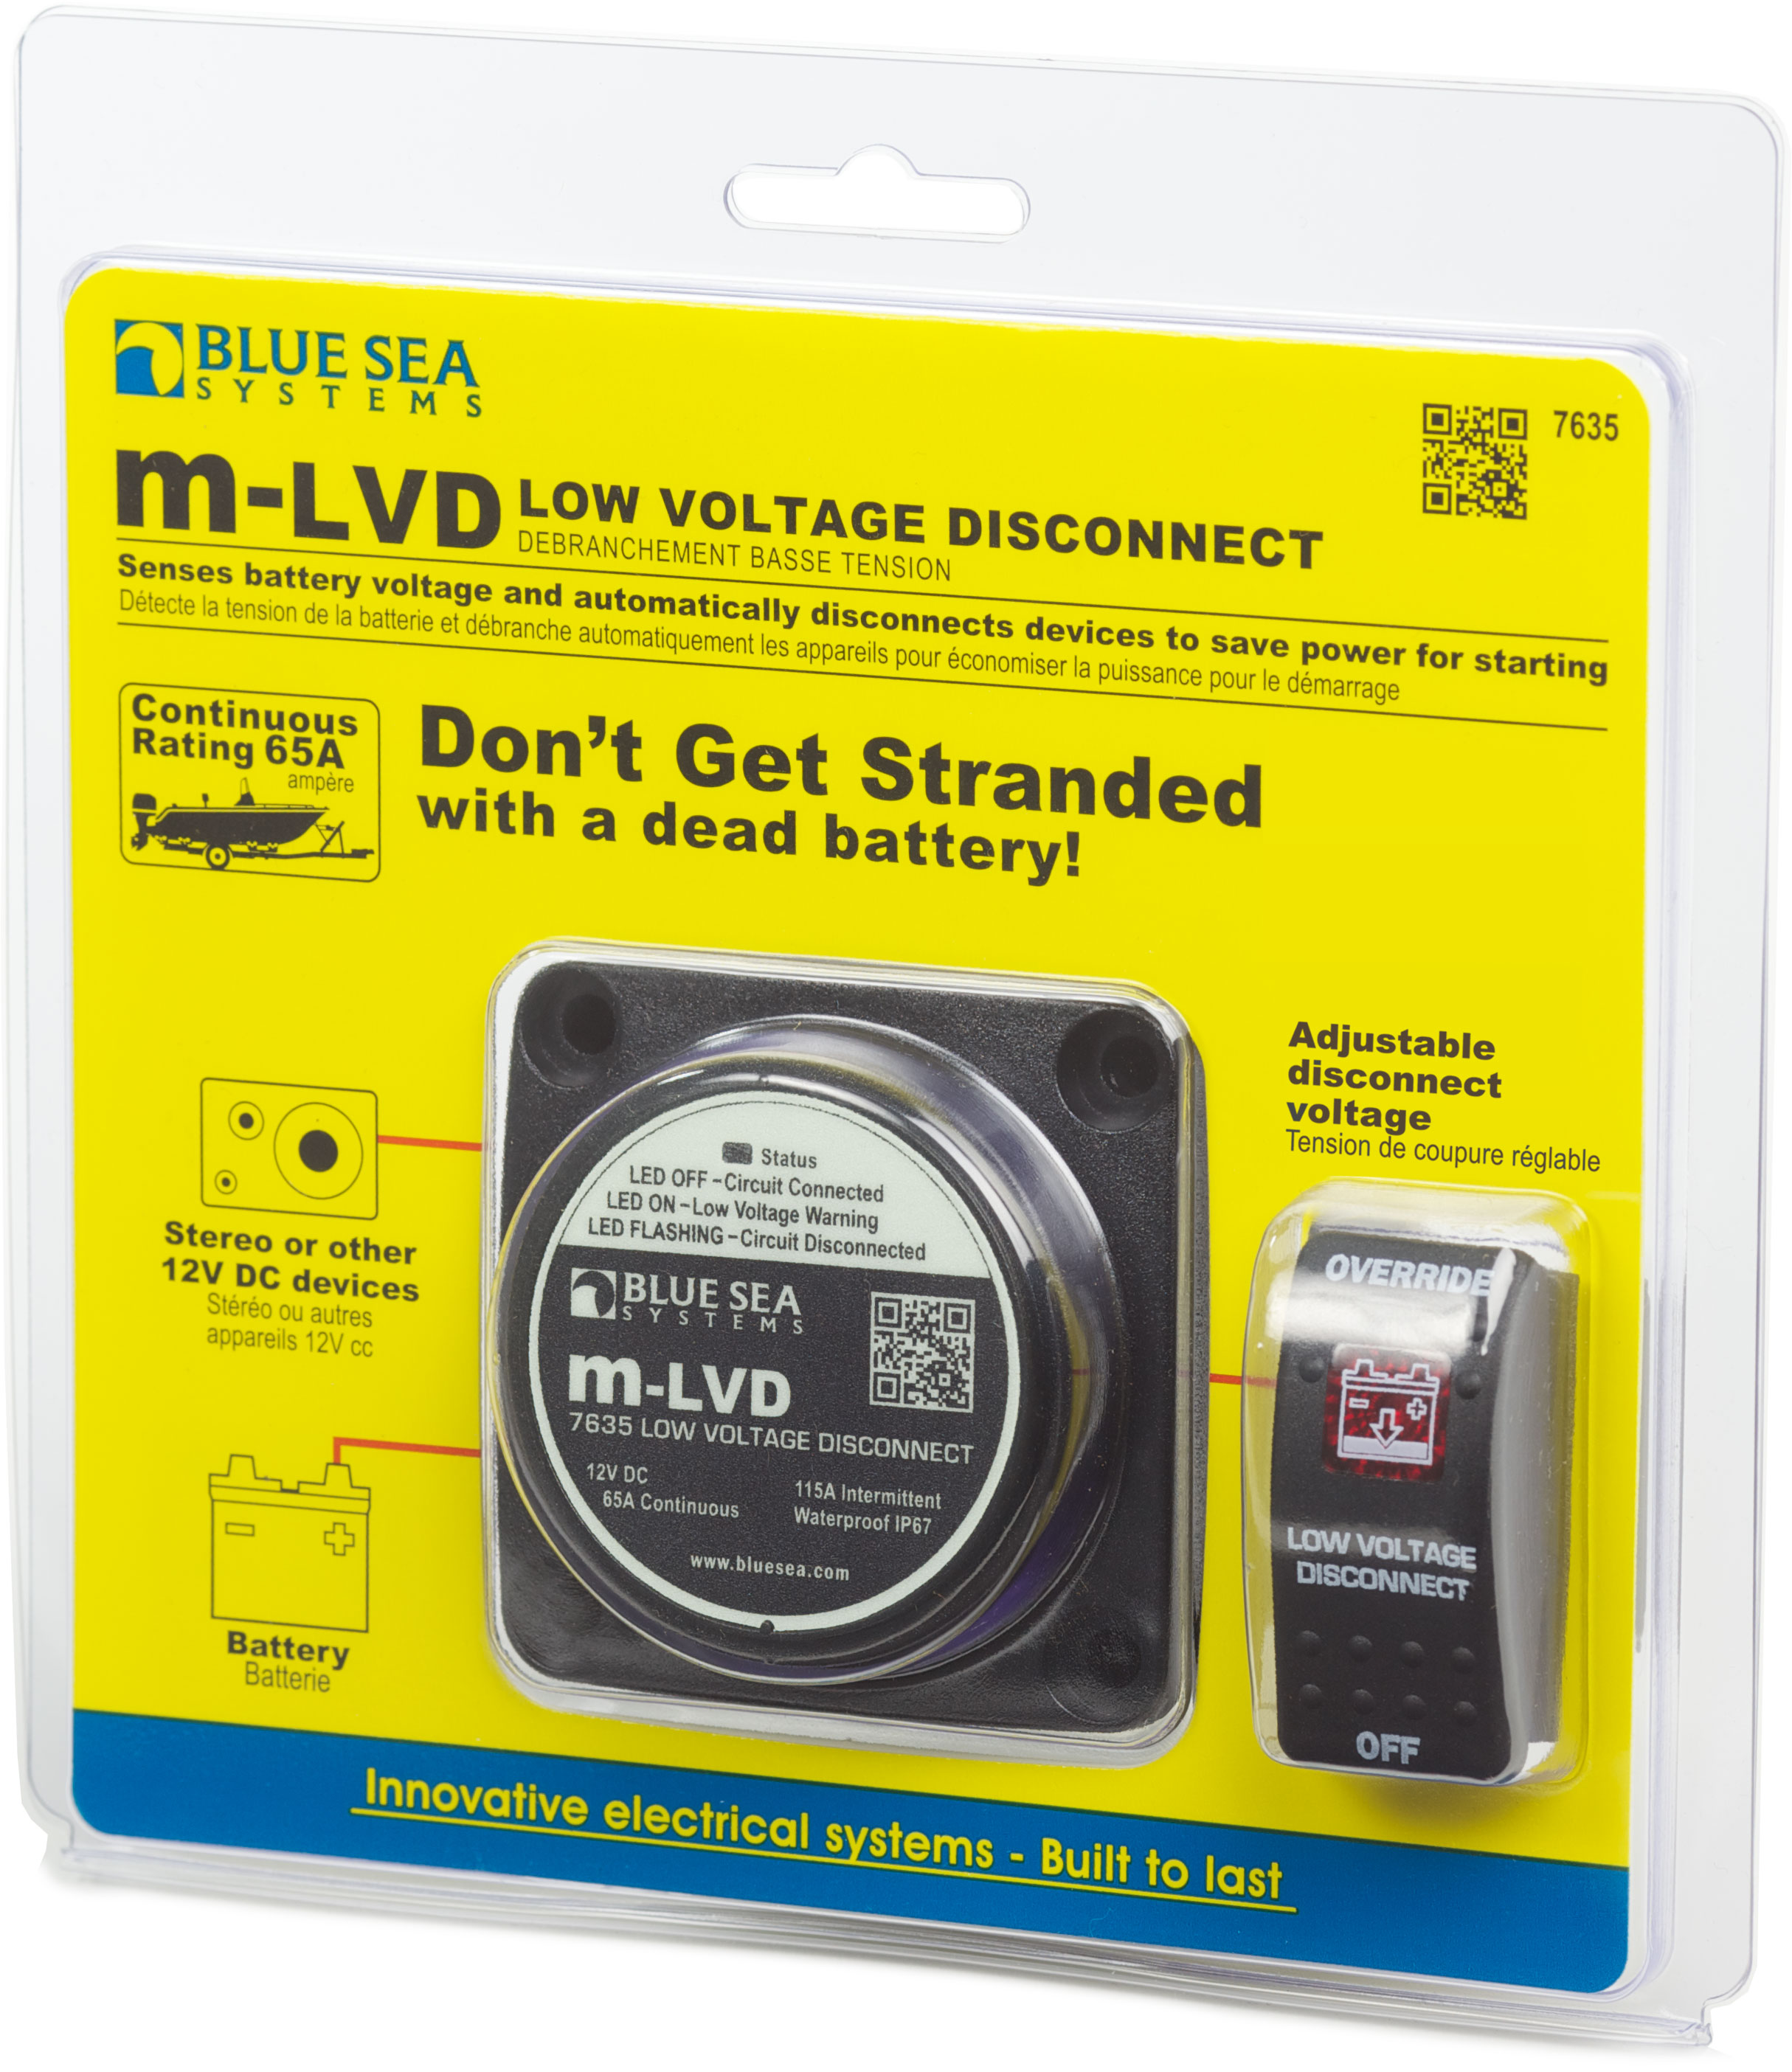 m-LVD Low Voltage Disconnect - Blue Sea Systems